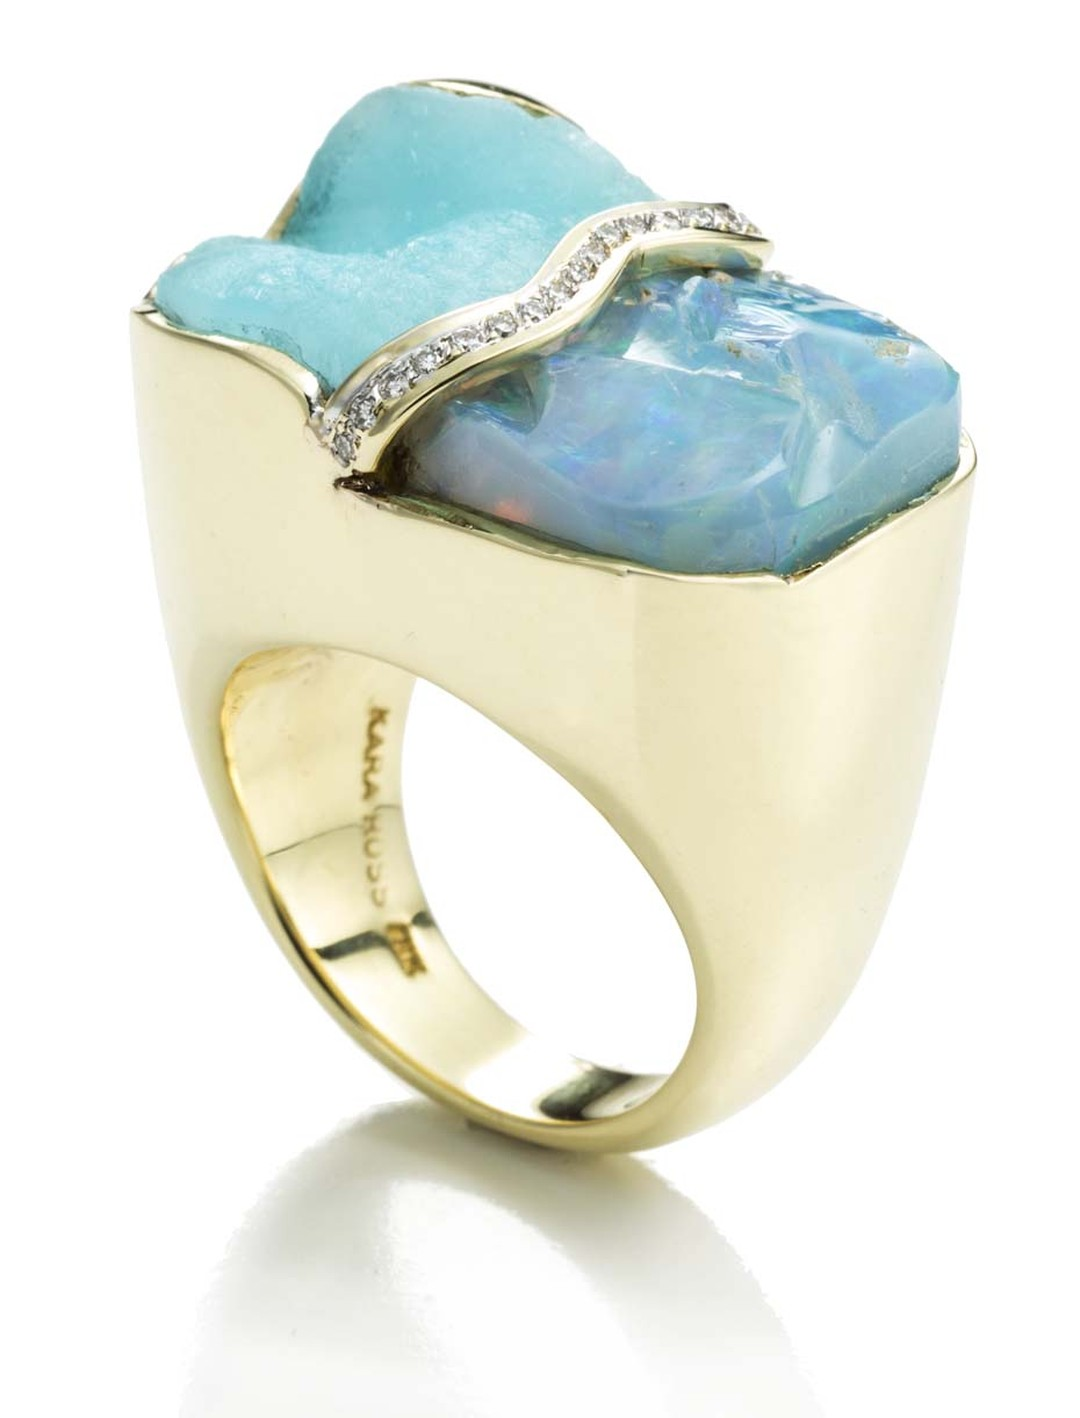 Kara Ross Petra Split ring featuring raw blue opal alongside a raw hemimorphite divided by pavé diamonds set in gold